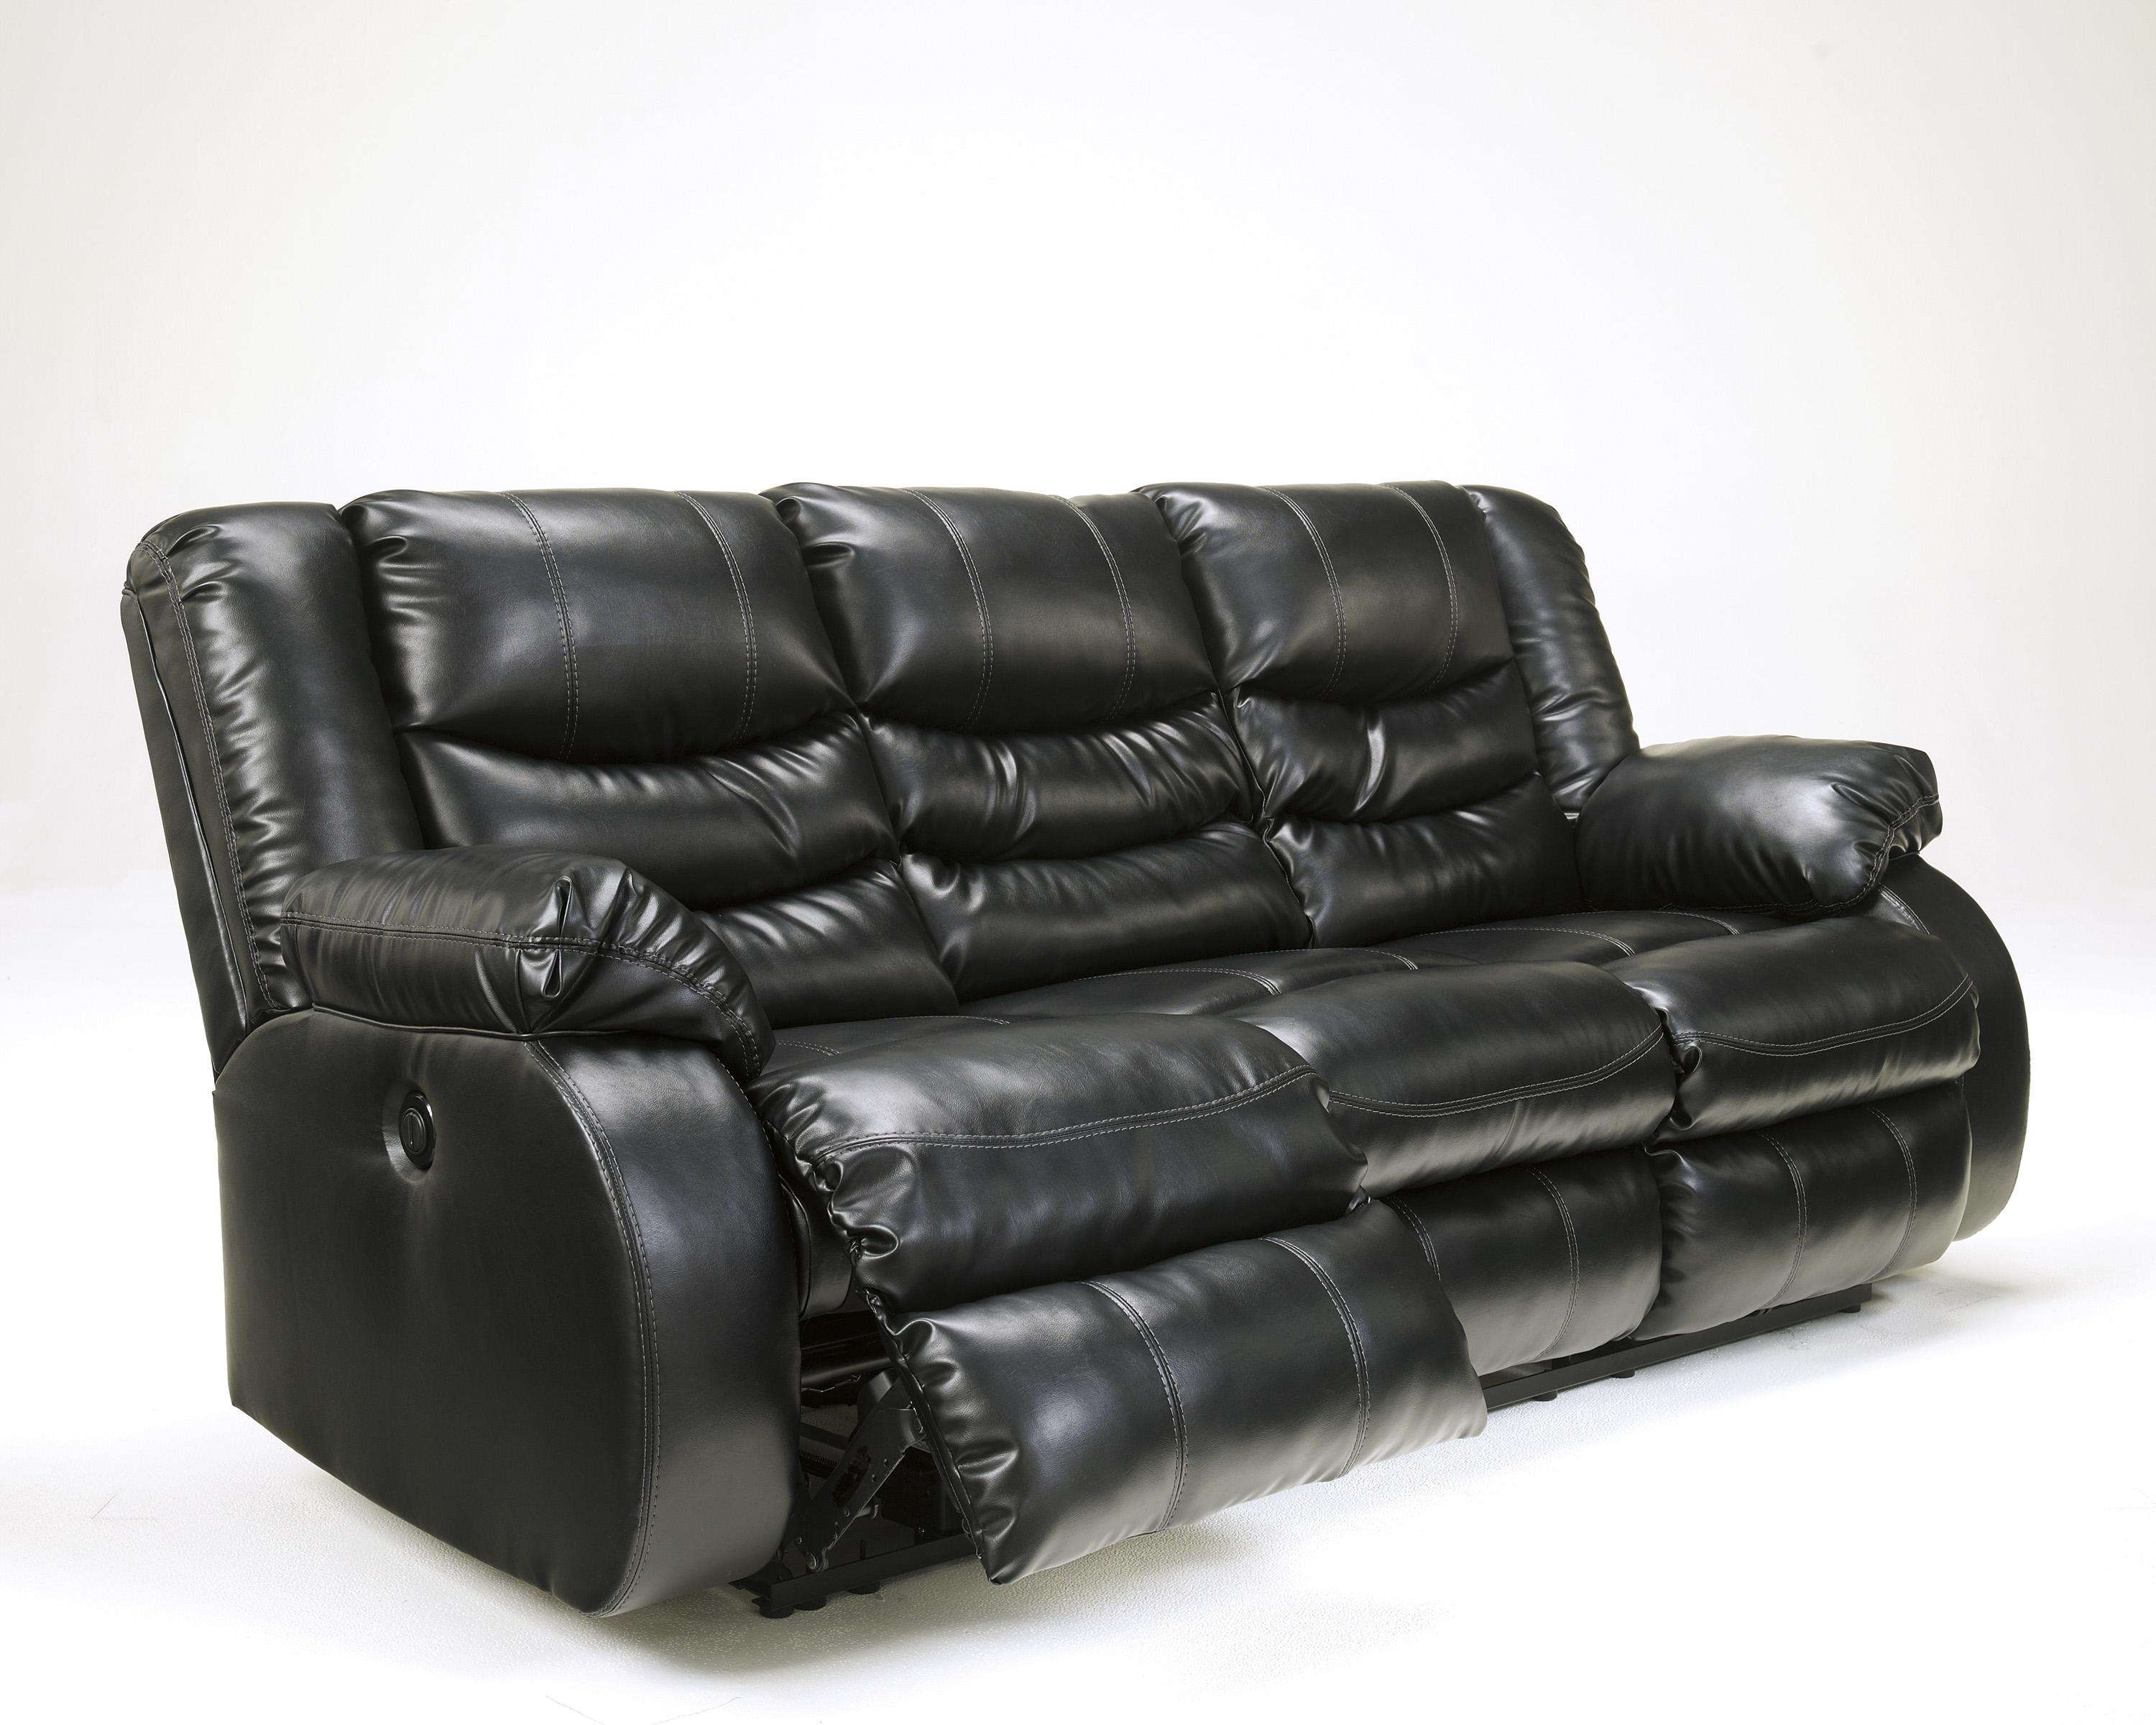 Contemporary Faux Leather Reclining Sofa with Pillow Arms. by Benchcraft  sc 1 st  Wolf Furniture & Contemporary Faux Leather Reclining Sofa with Pillow Arms by ... islam-shia.org